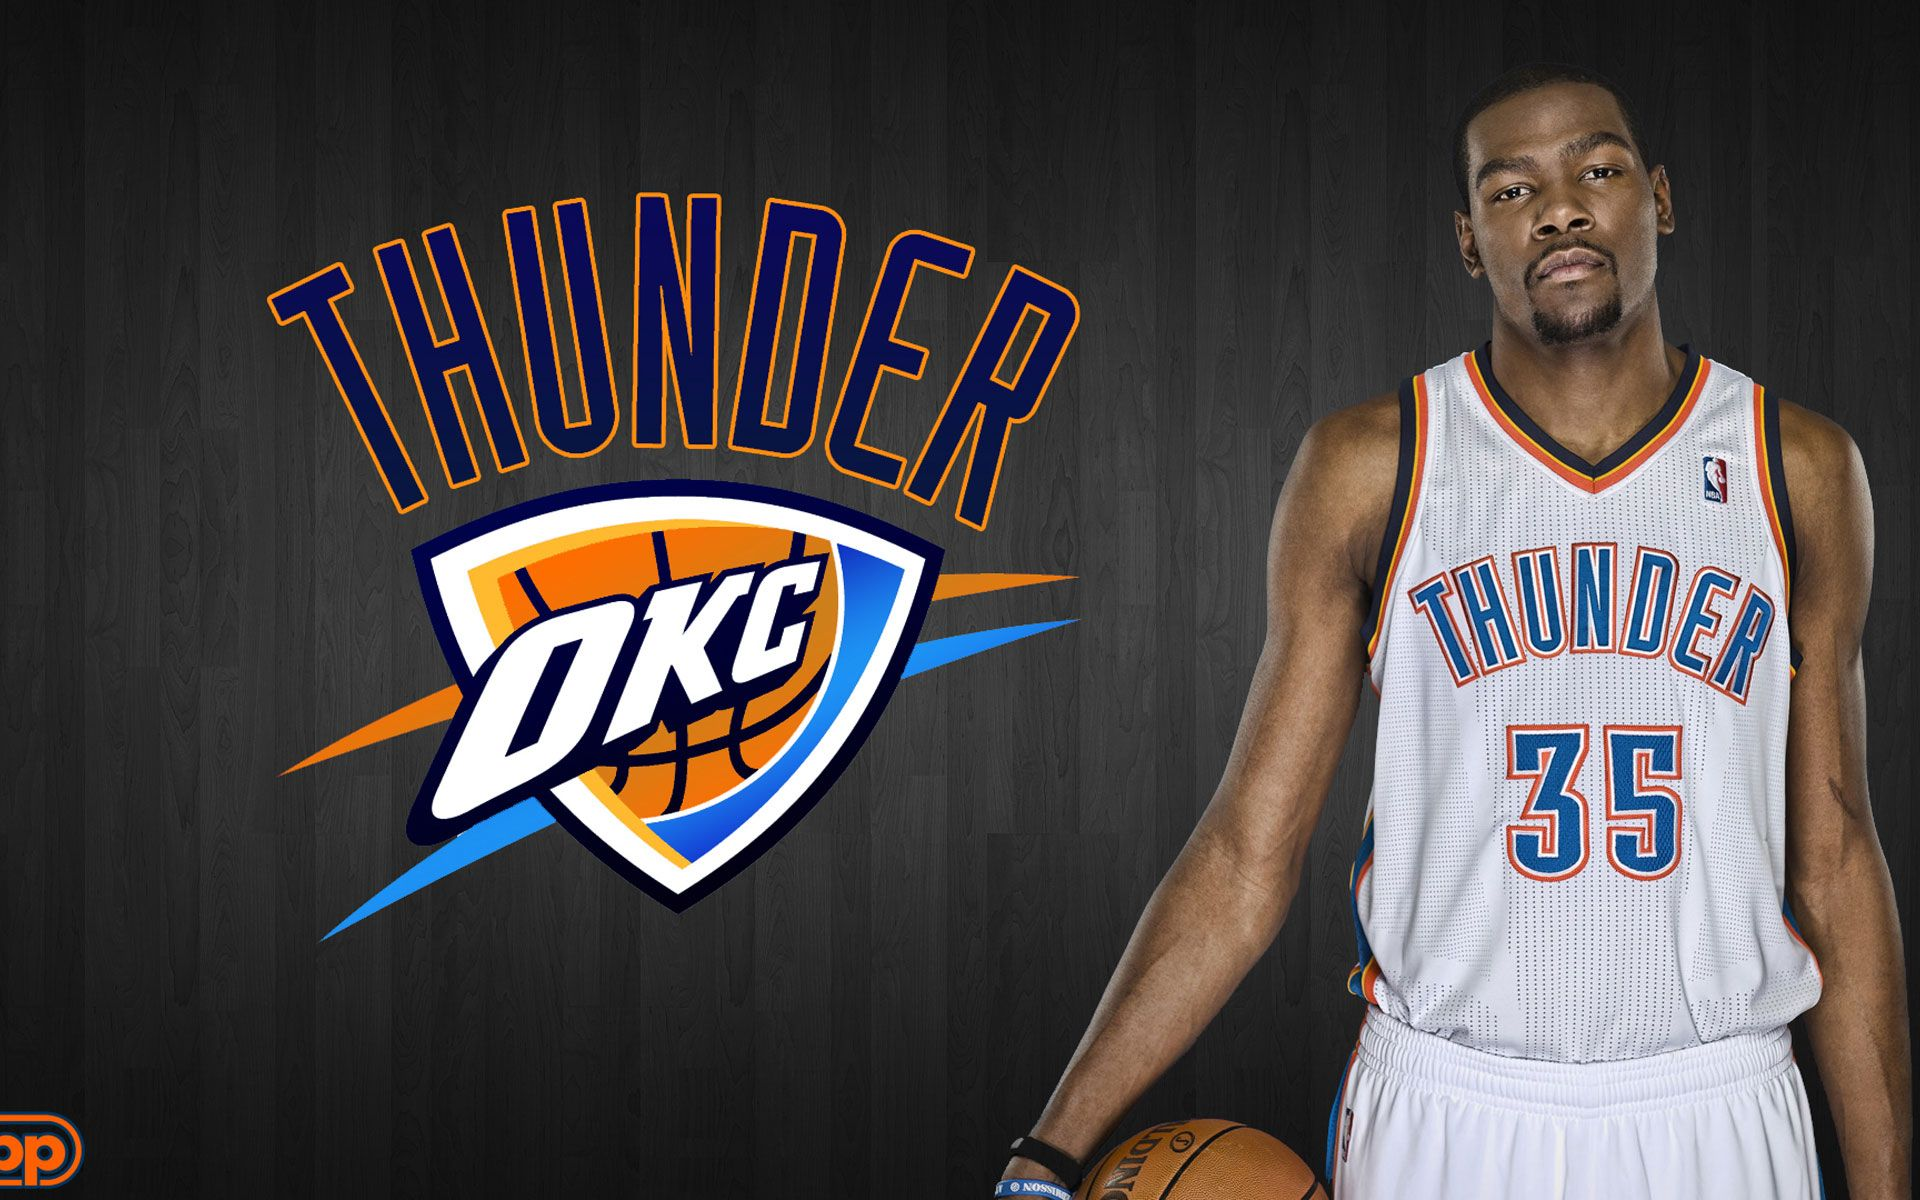 f47ada4cfc52 Kevin Durant Wallpapers - Full HD wallpaper search